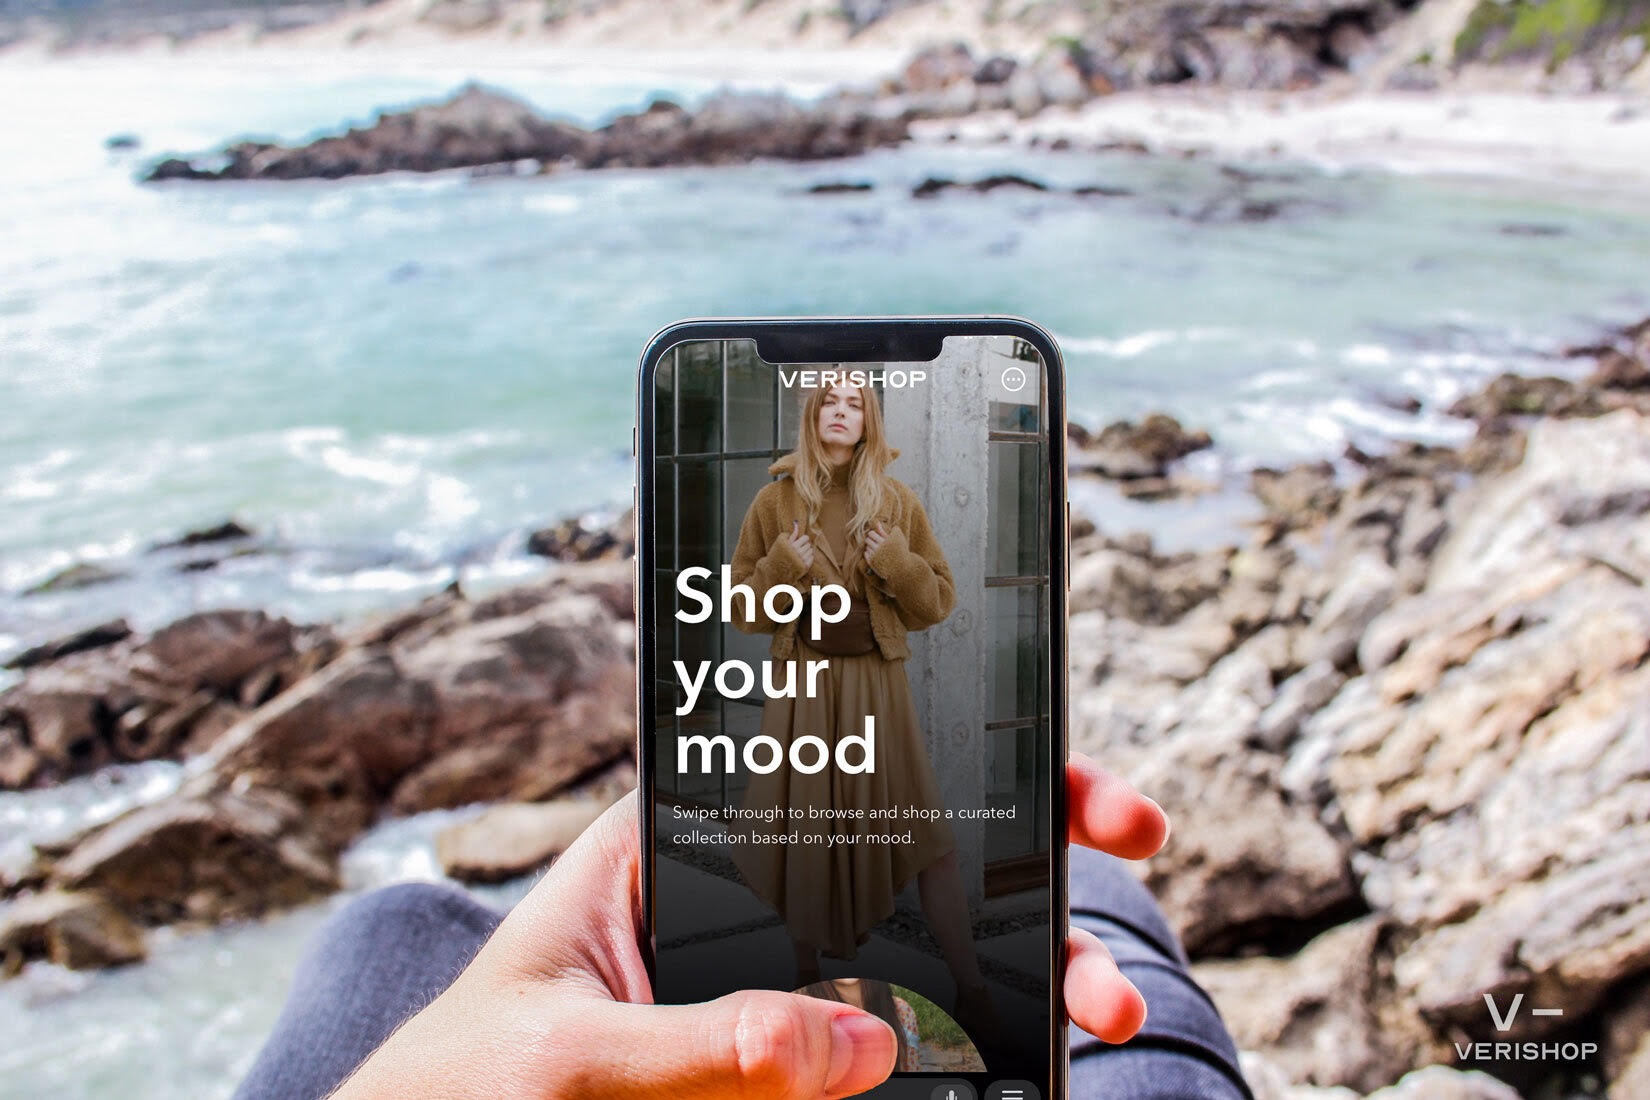 Verishop and Snap Inc. announced the launch of Verishop Mini: a curated shopping experience that lives exclusively within Snapchat, allowing users to discover and shop the latest in fashion and beauty products all without leaving the app. Verishop Mini, which debuts today, seamlessly delivers Verishop's e-commerce experience to the 280 million daily Snapchat users.